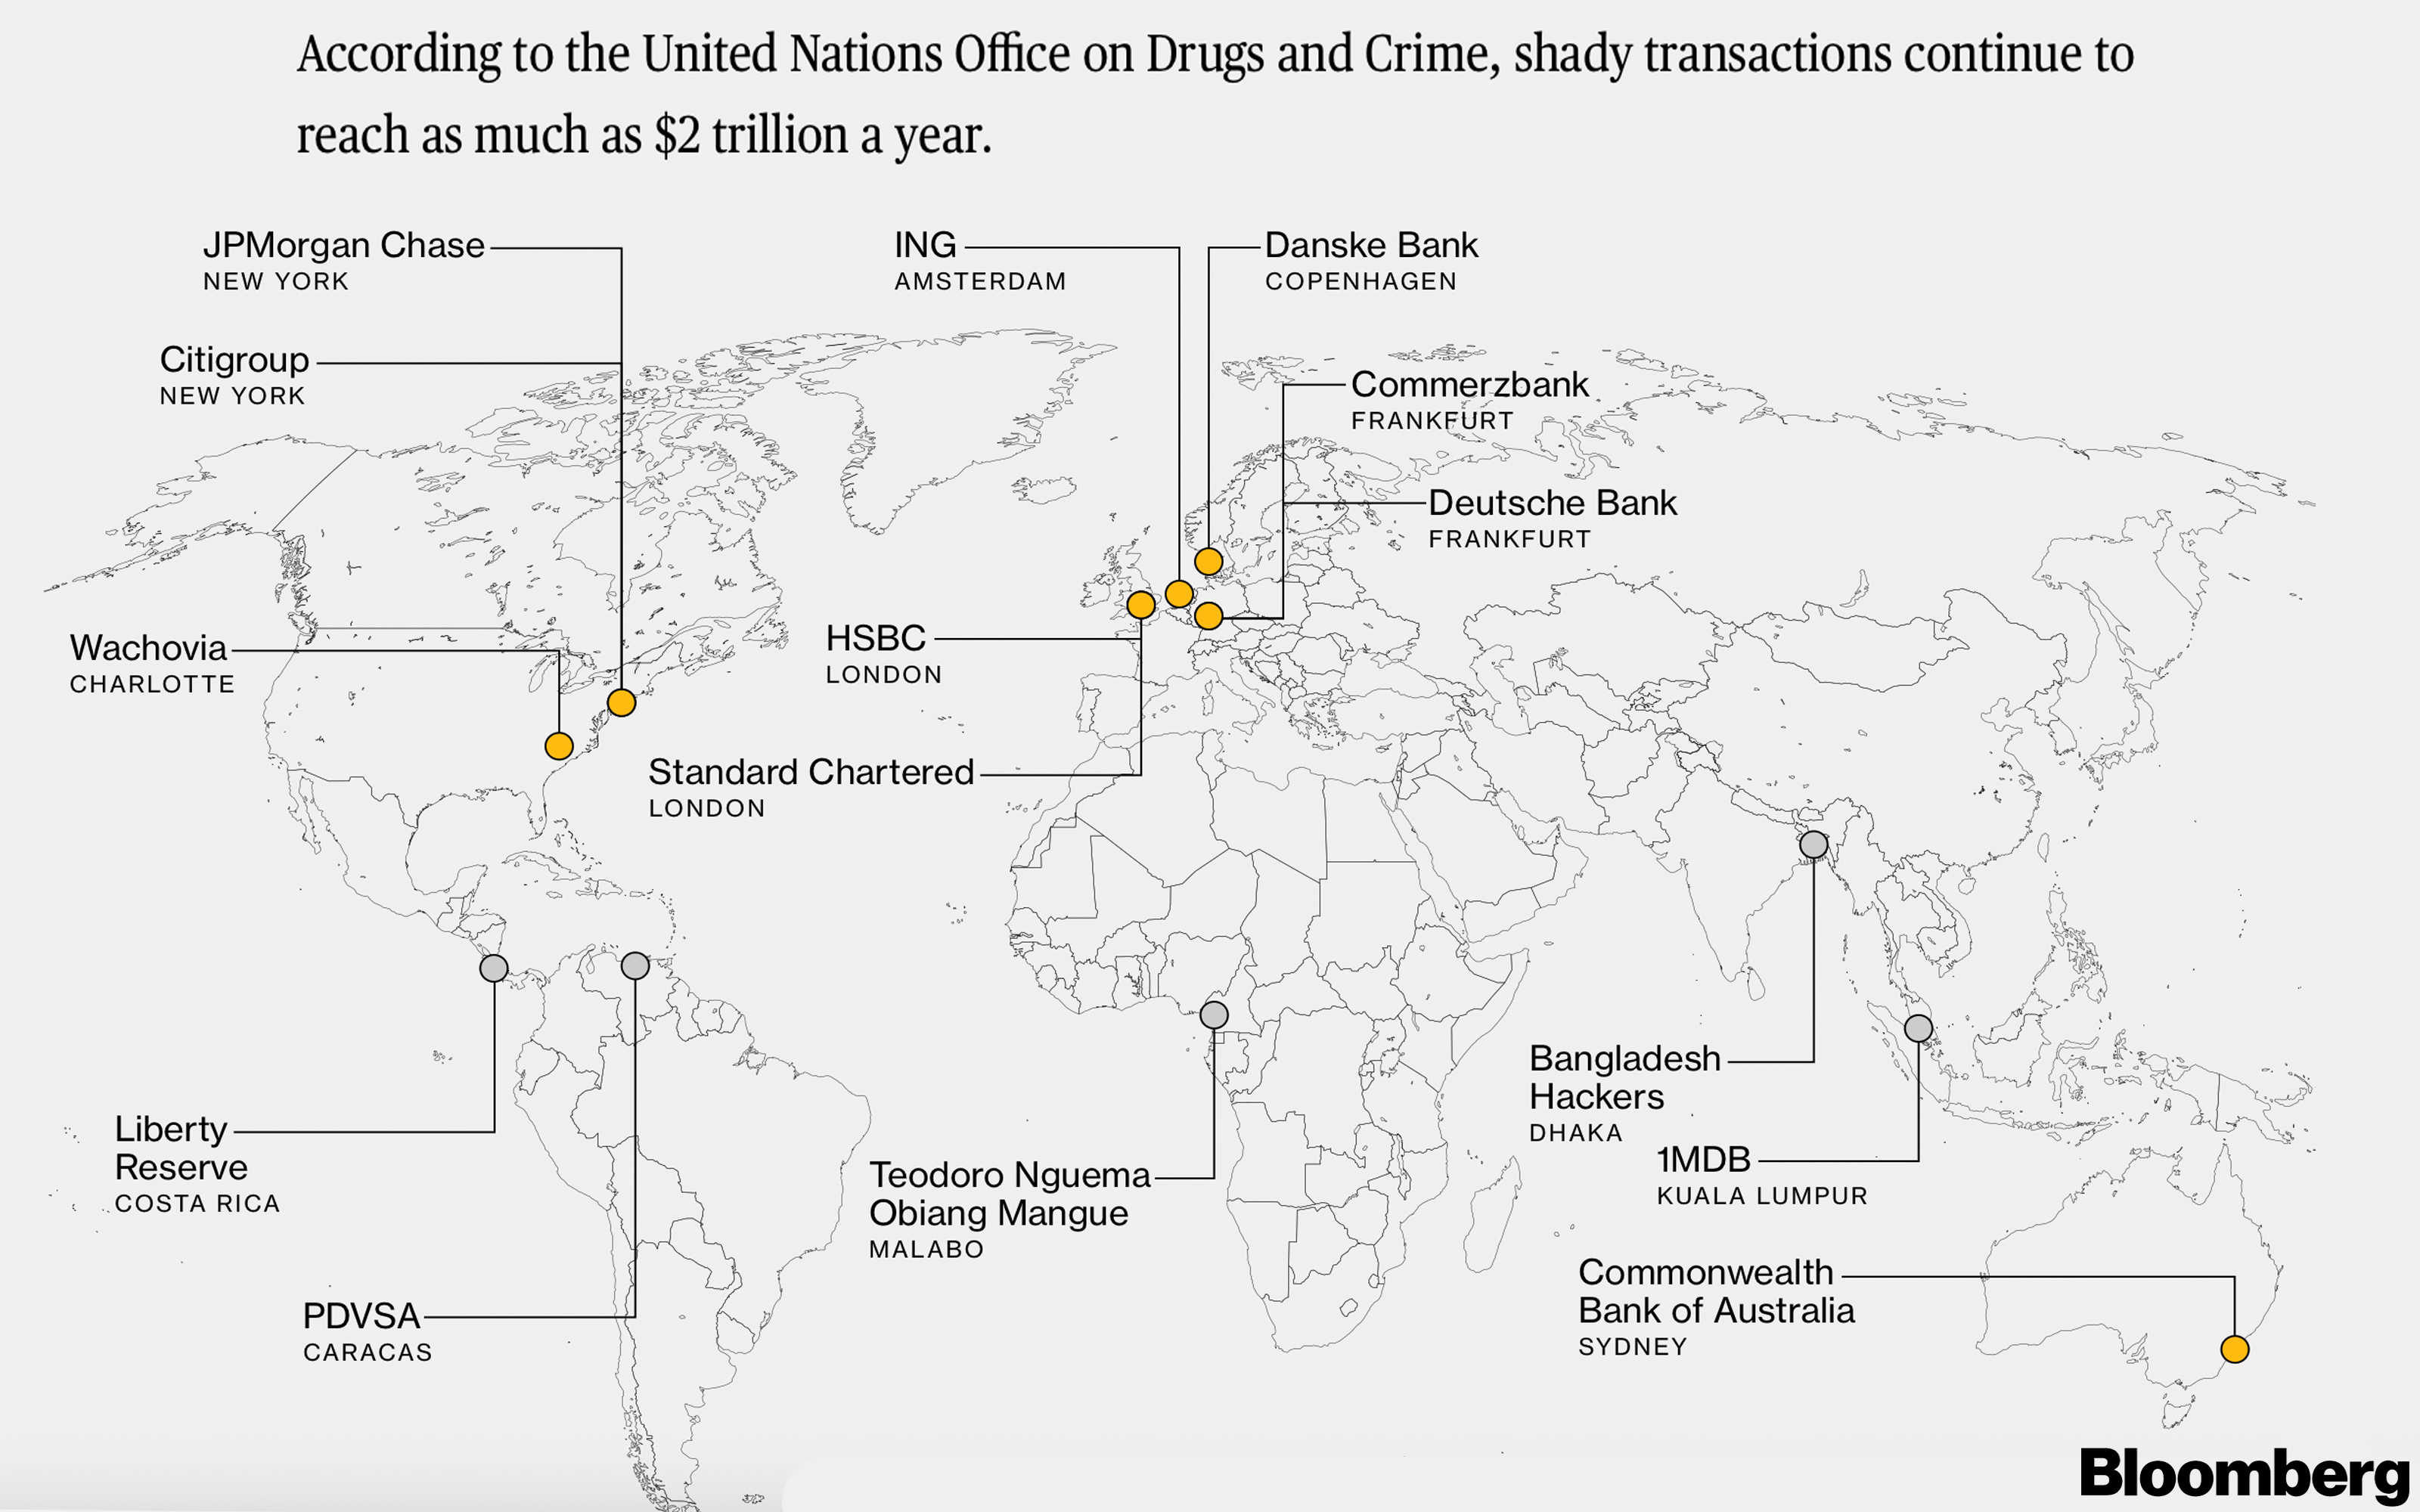 How the World's Leading Banks Help Launder $ 2 Trillion a Year